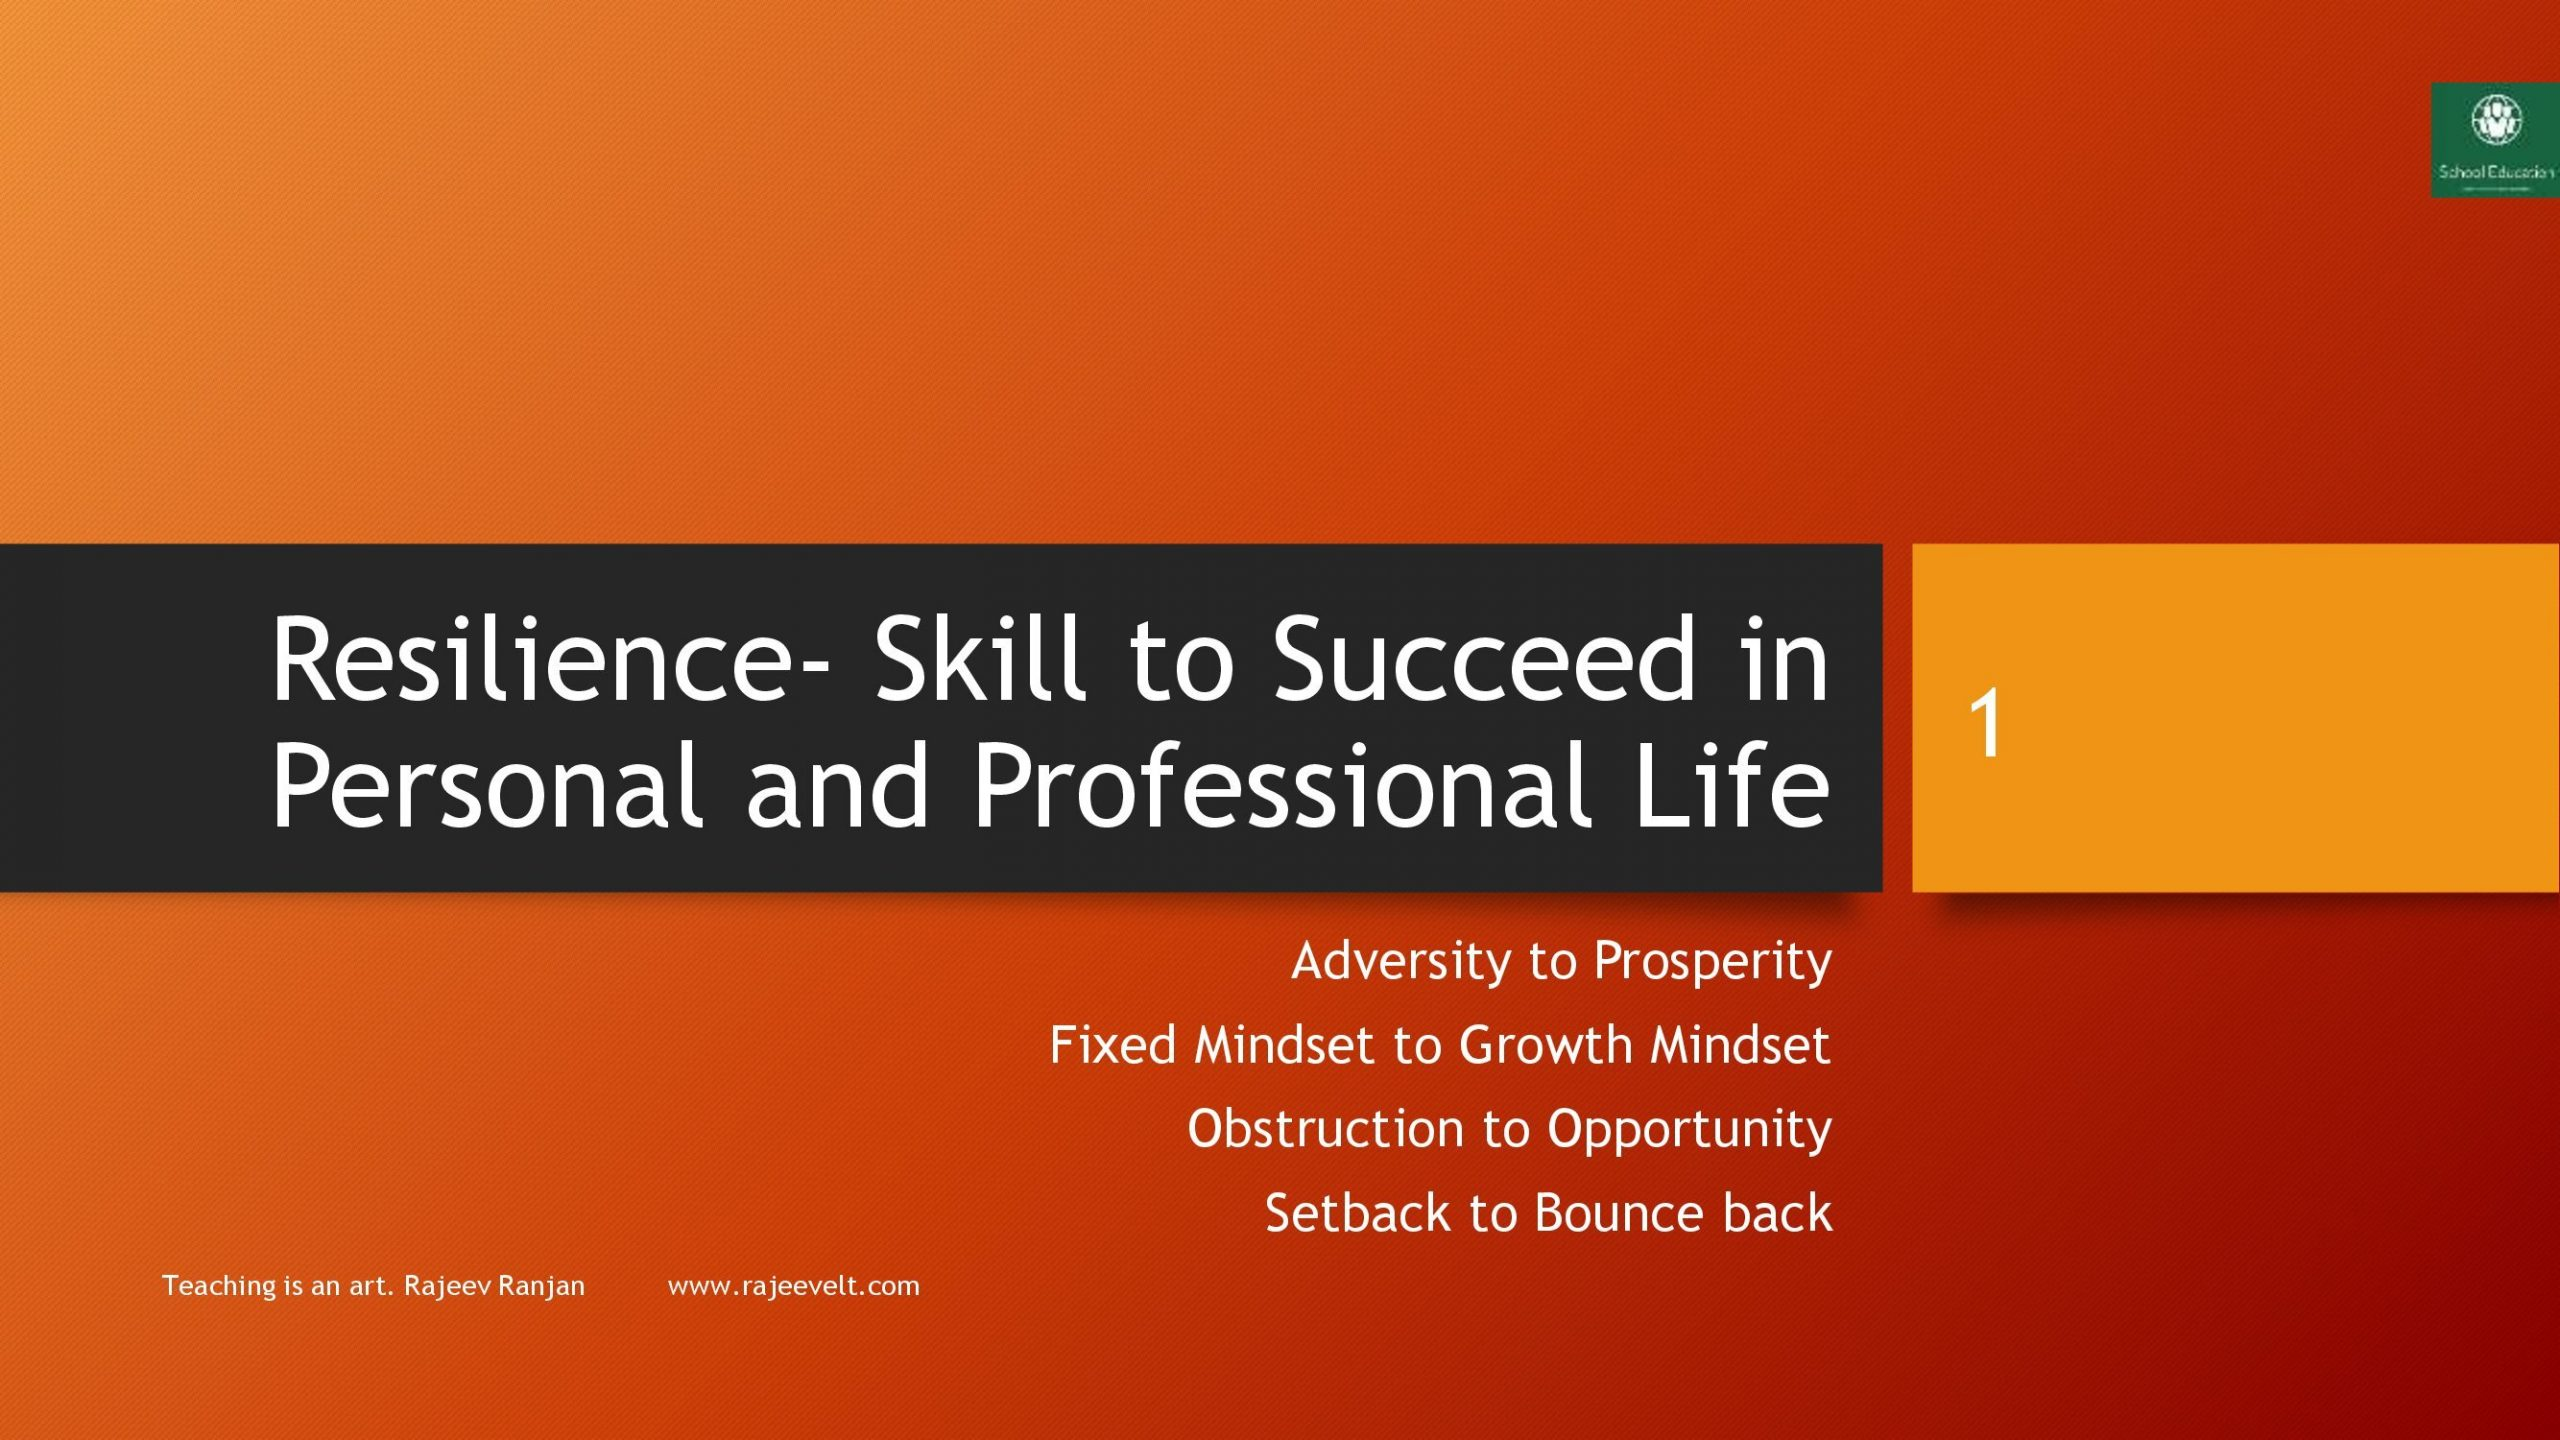 esilience-Skill-to-Succeed-in-Personal-and-Professional-Life-rajeevelt